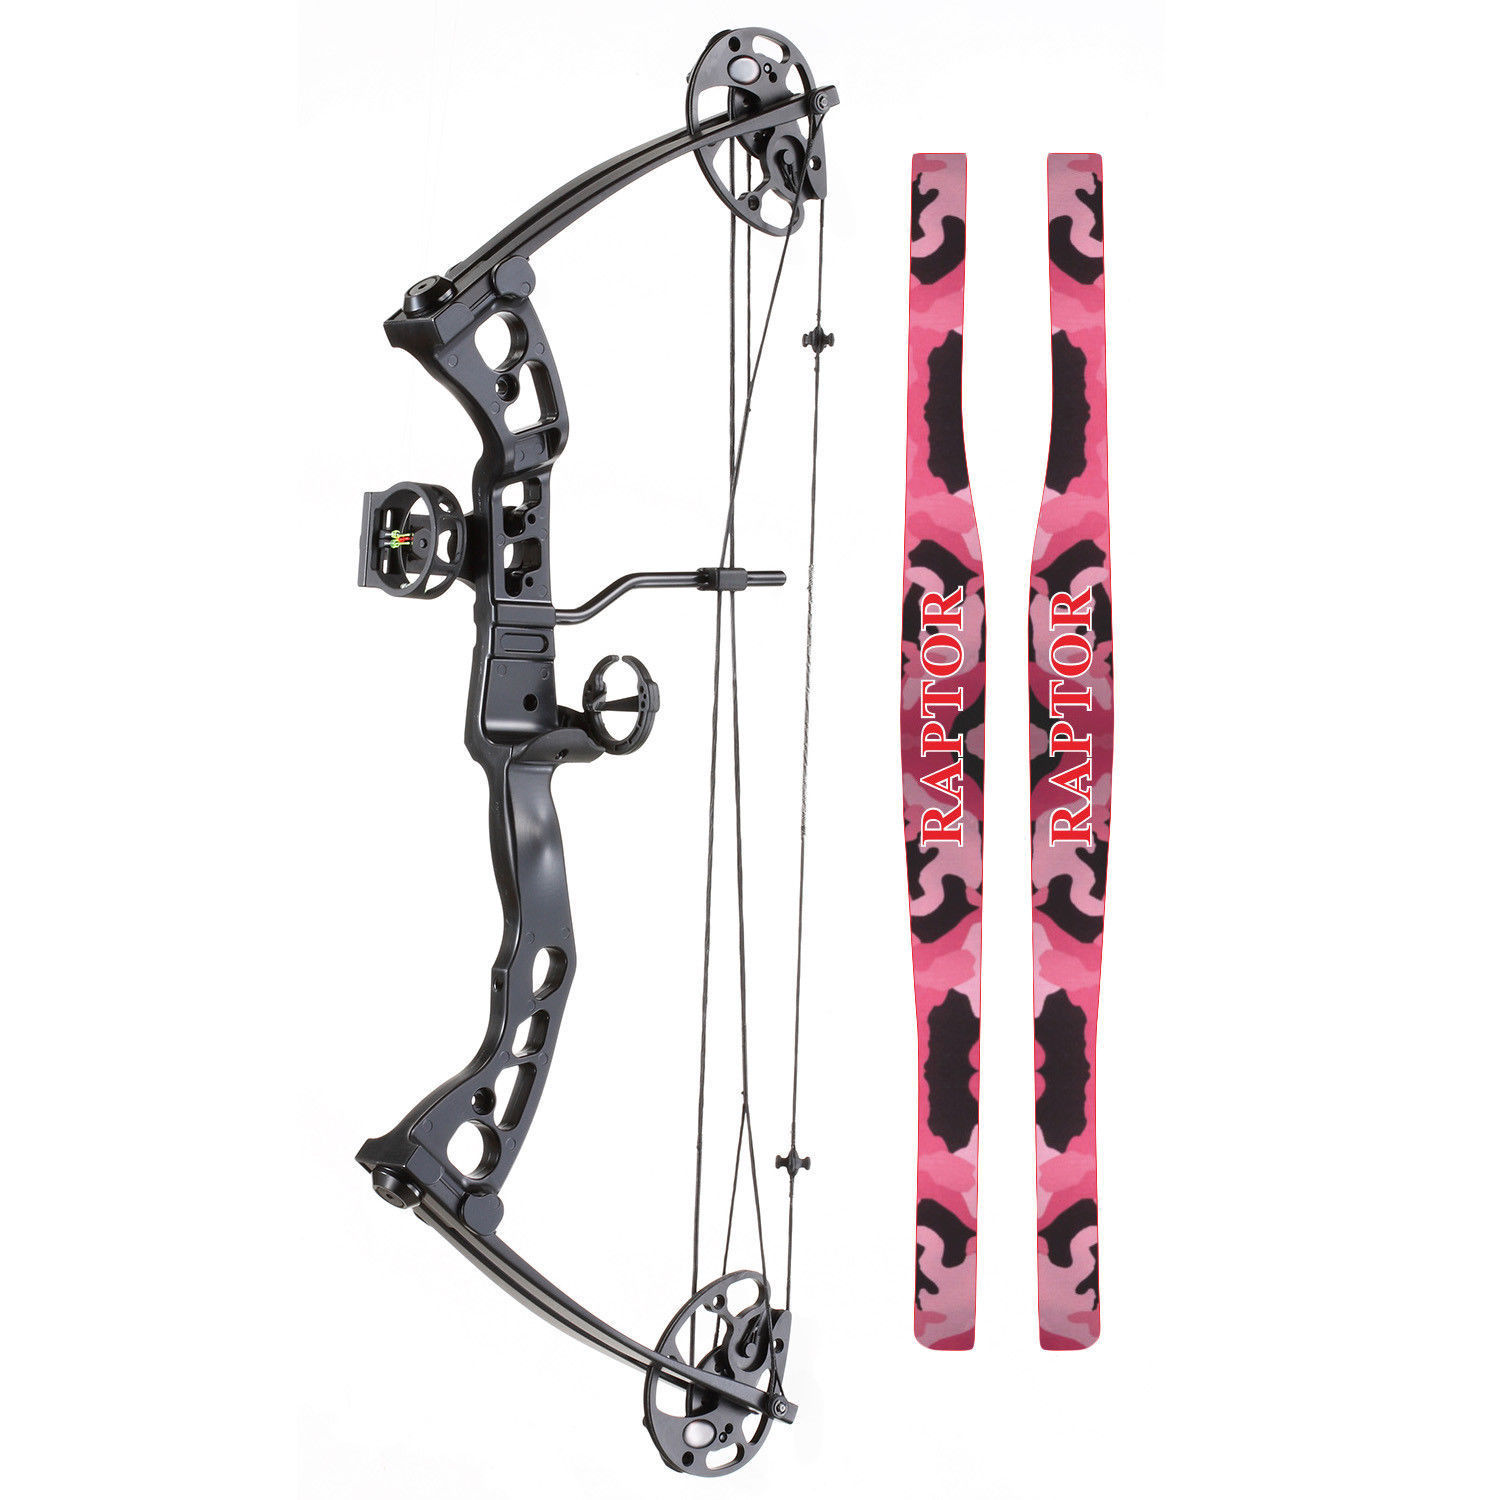 SA Sports R-570 Youth Compound Bow Pink Camo - 570